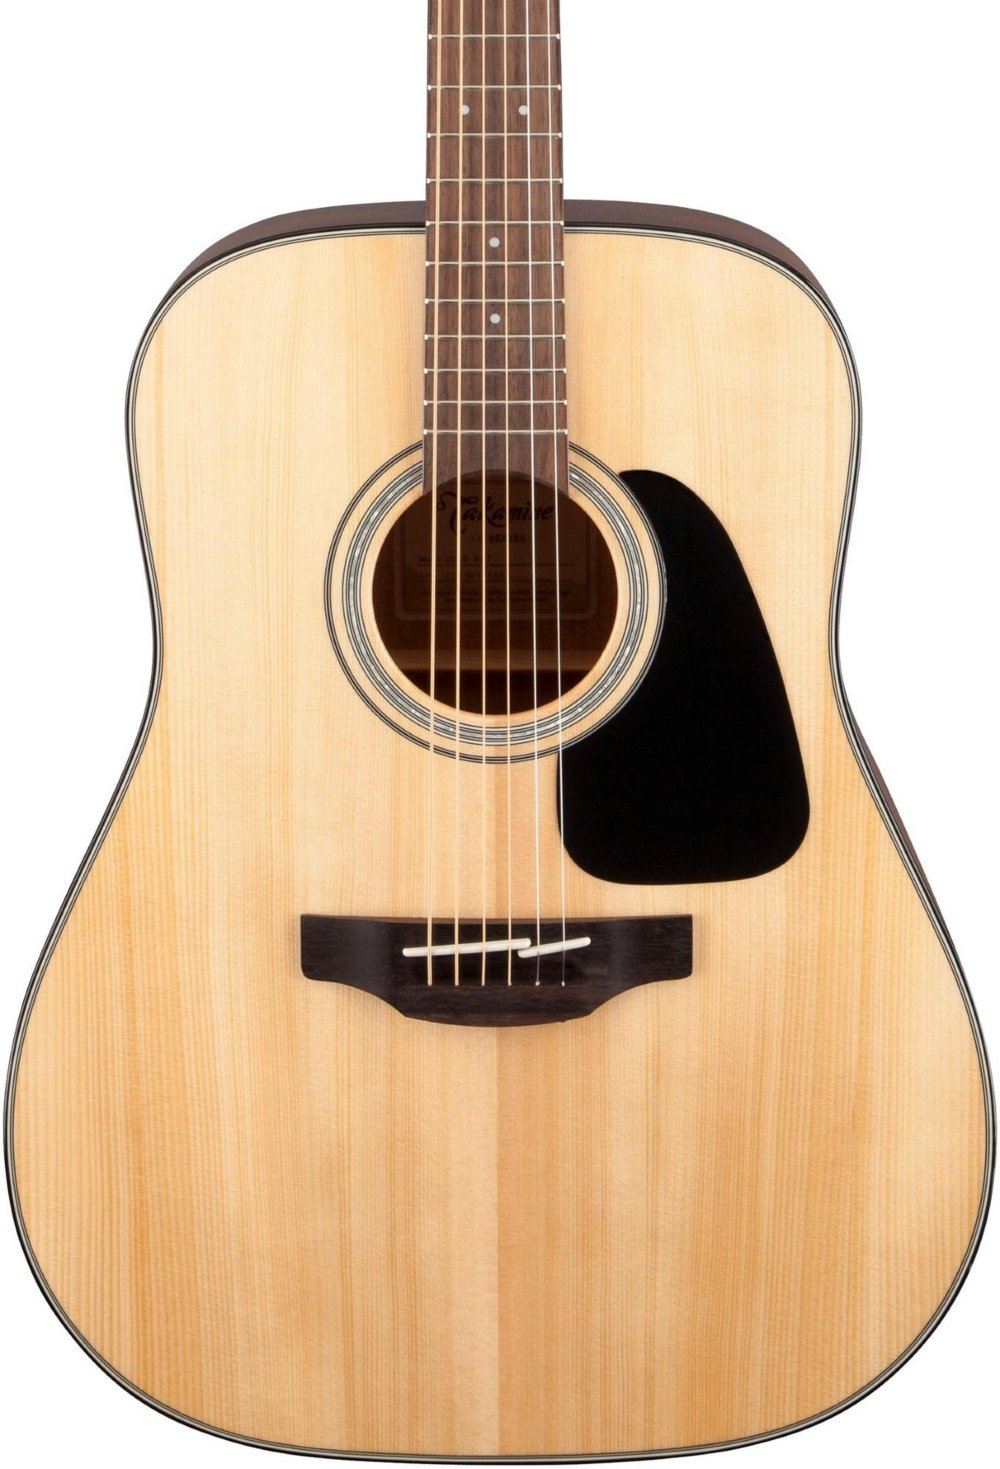 Takamine G Series Dreadnought Solid Top Acoustic Guitar Gloss Natural by Takamine